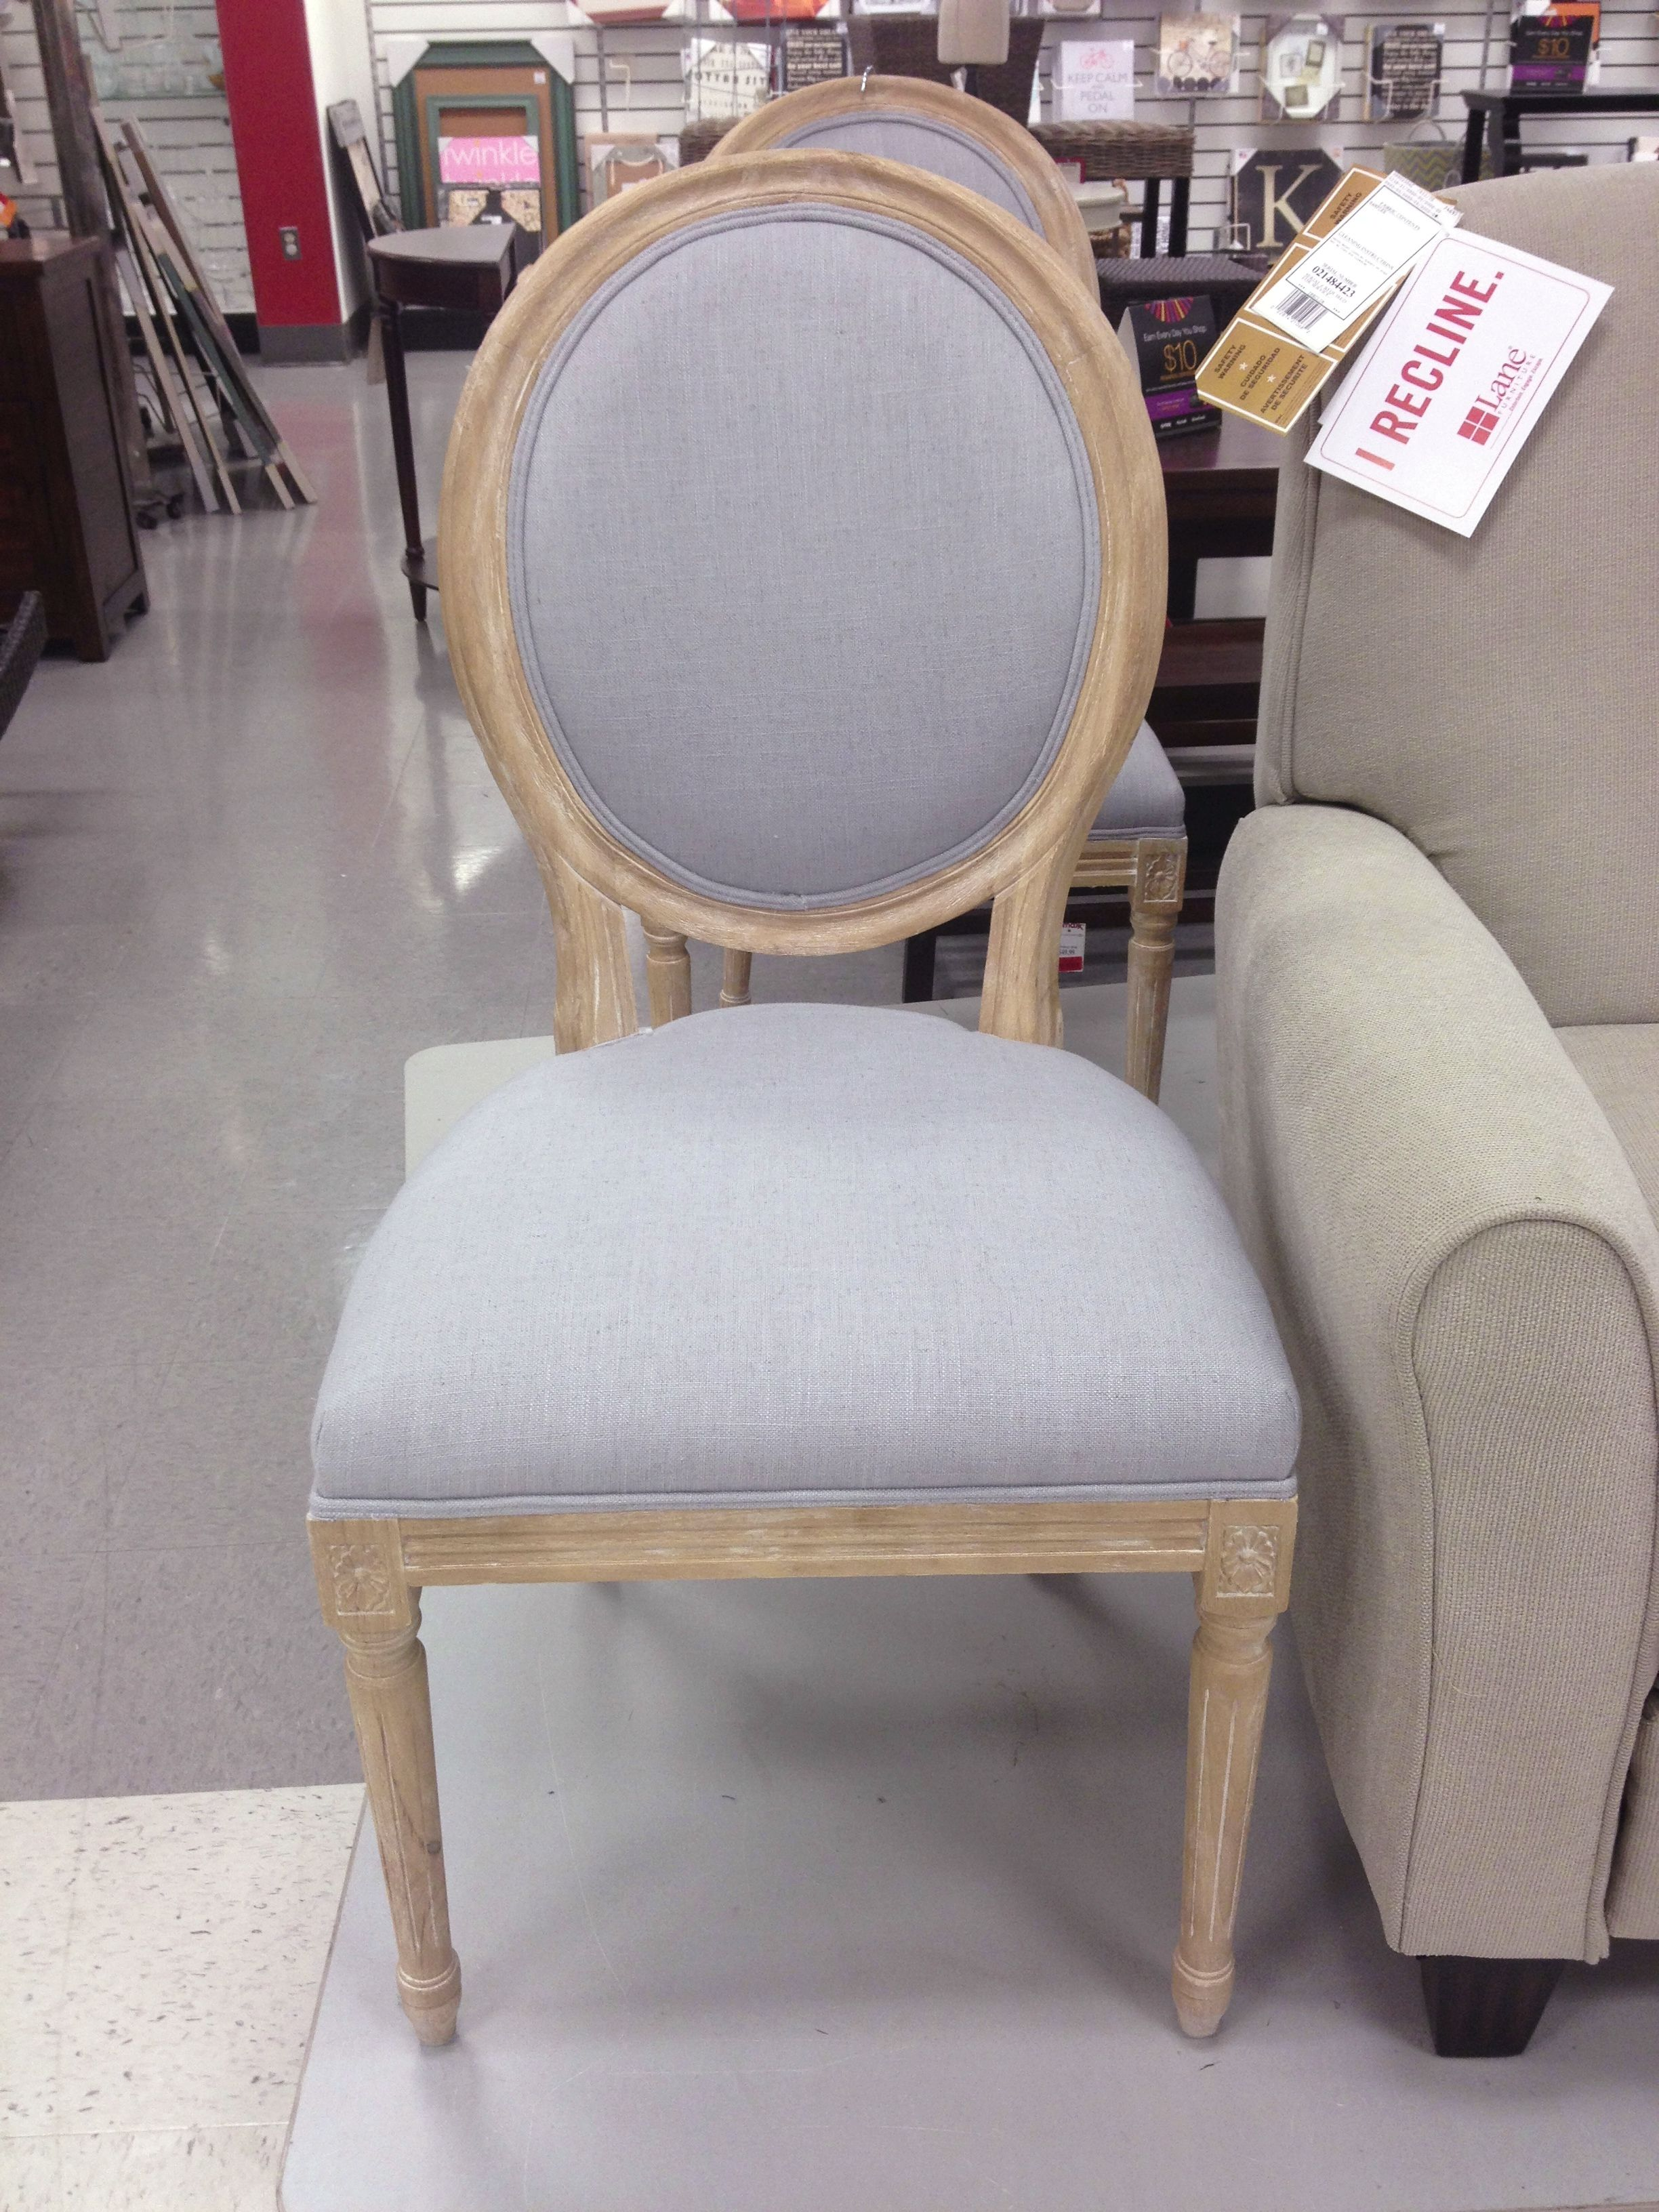 French Chairs Tj Maxx Marshalls Furniture Finds Pinterest